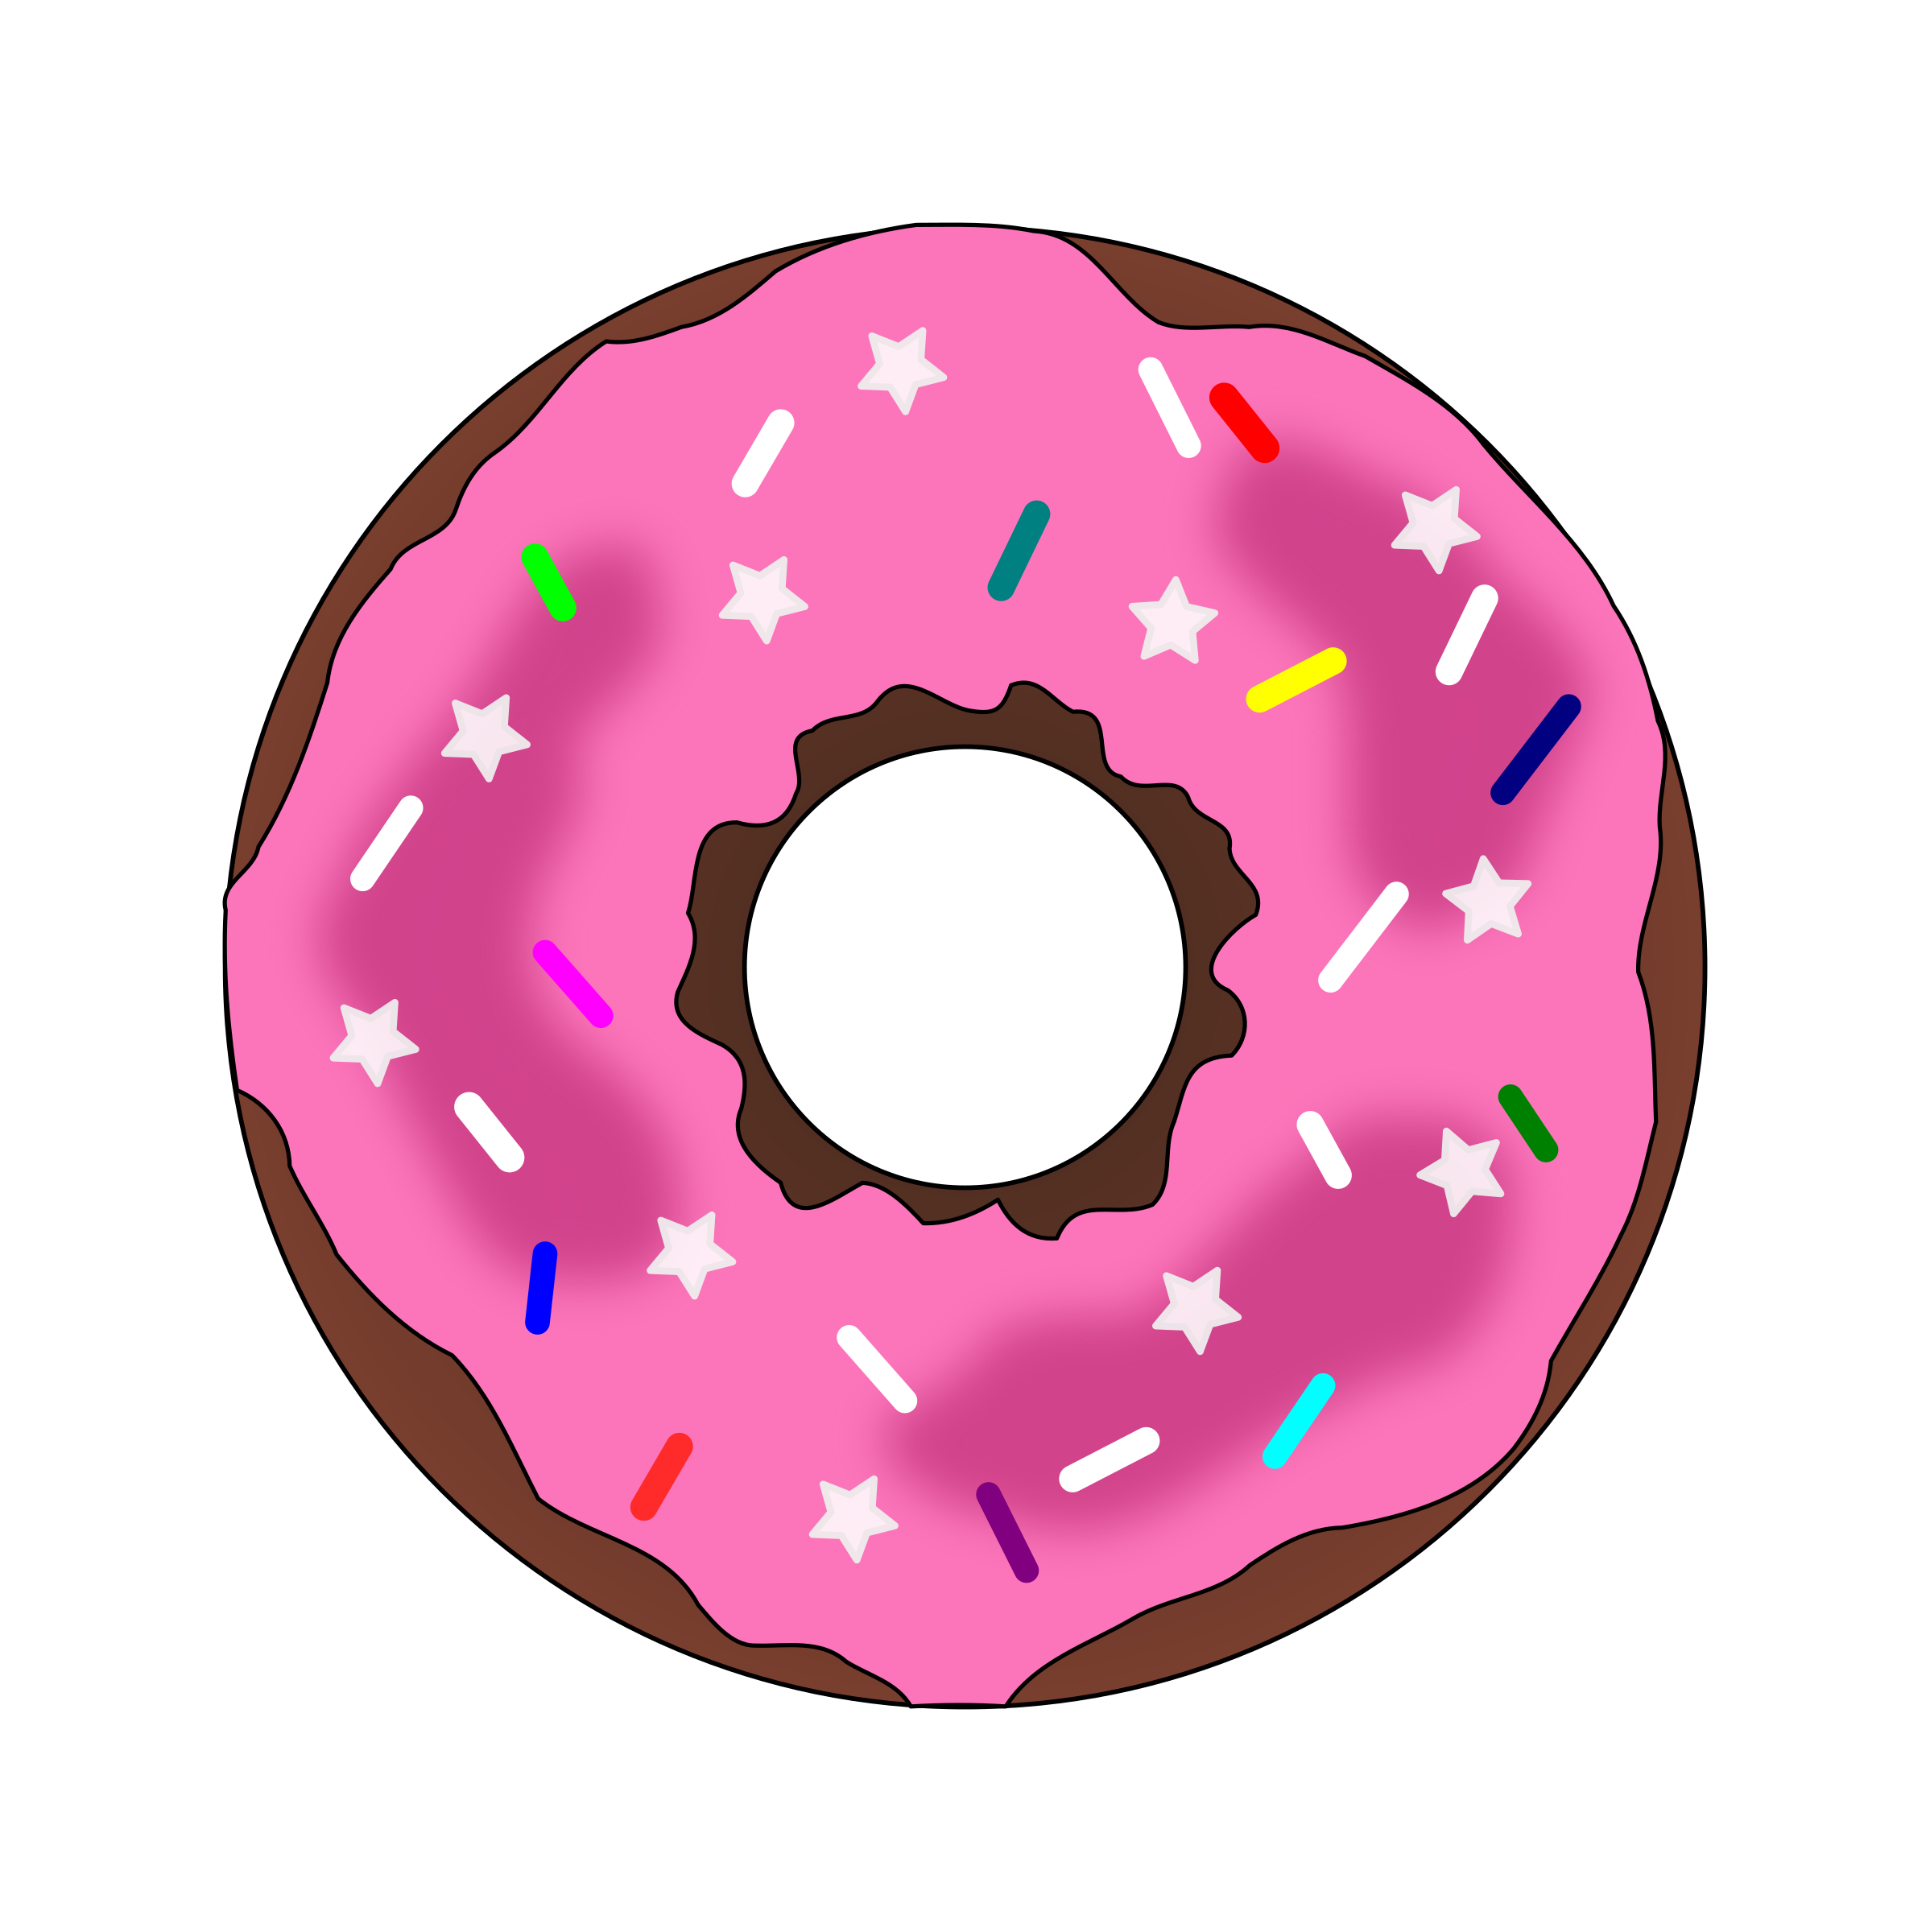 Stars and Sprinkles Donut by PinkJellyfish